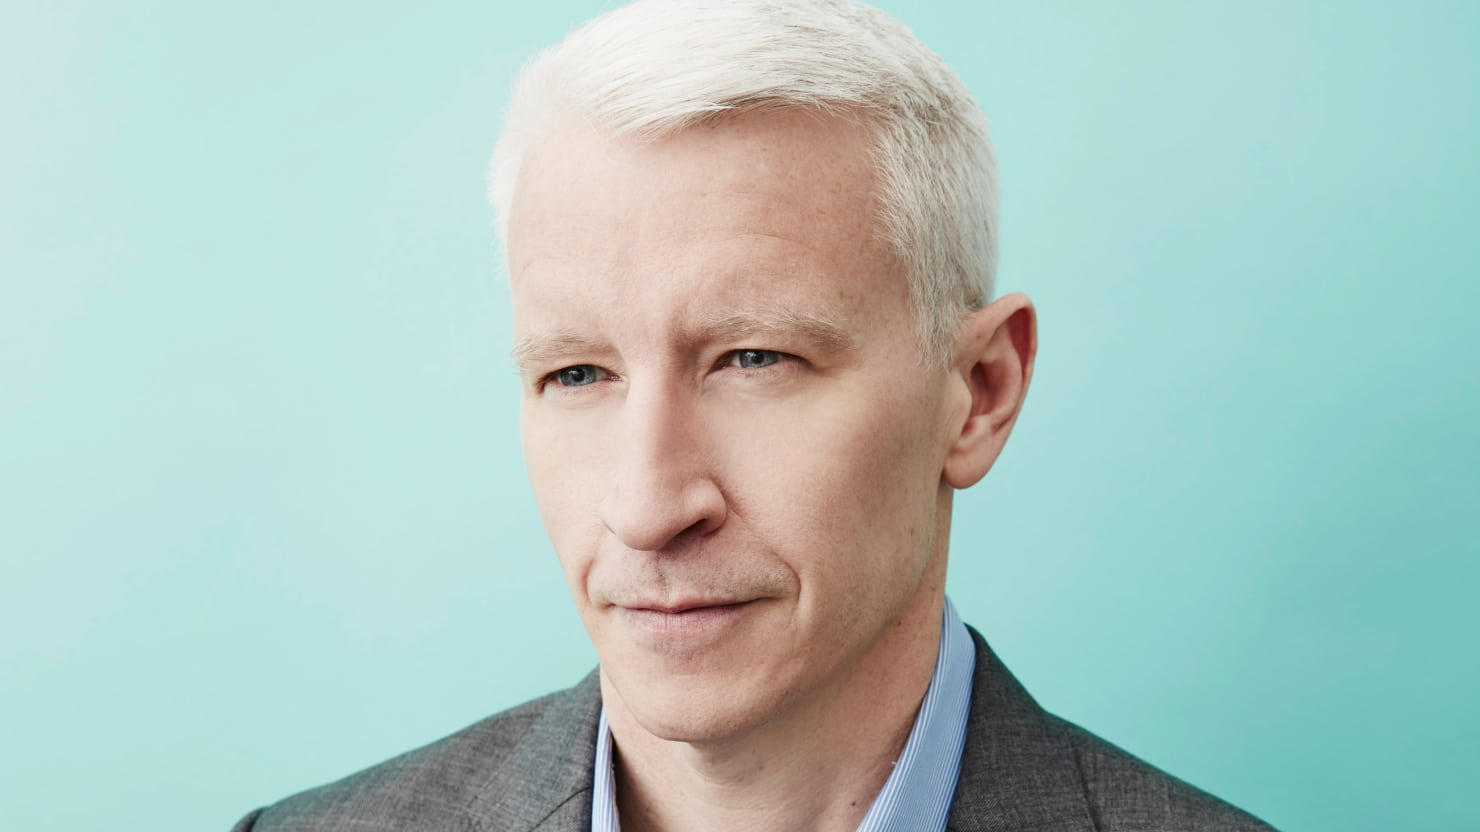 anderson cooper interview portrait